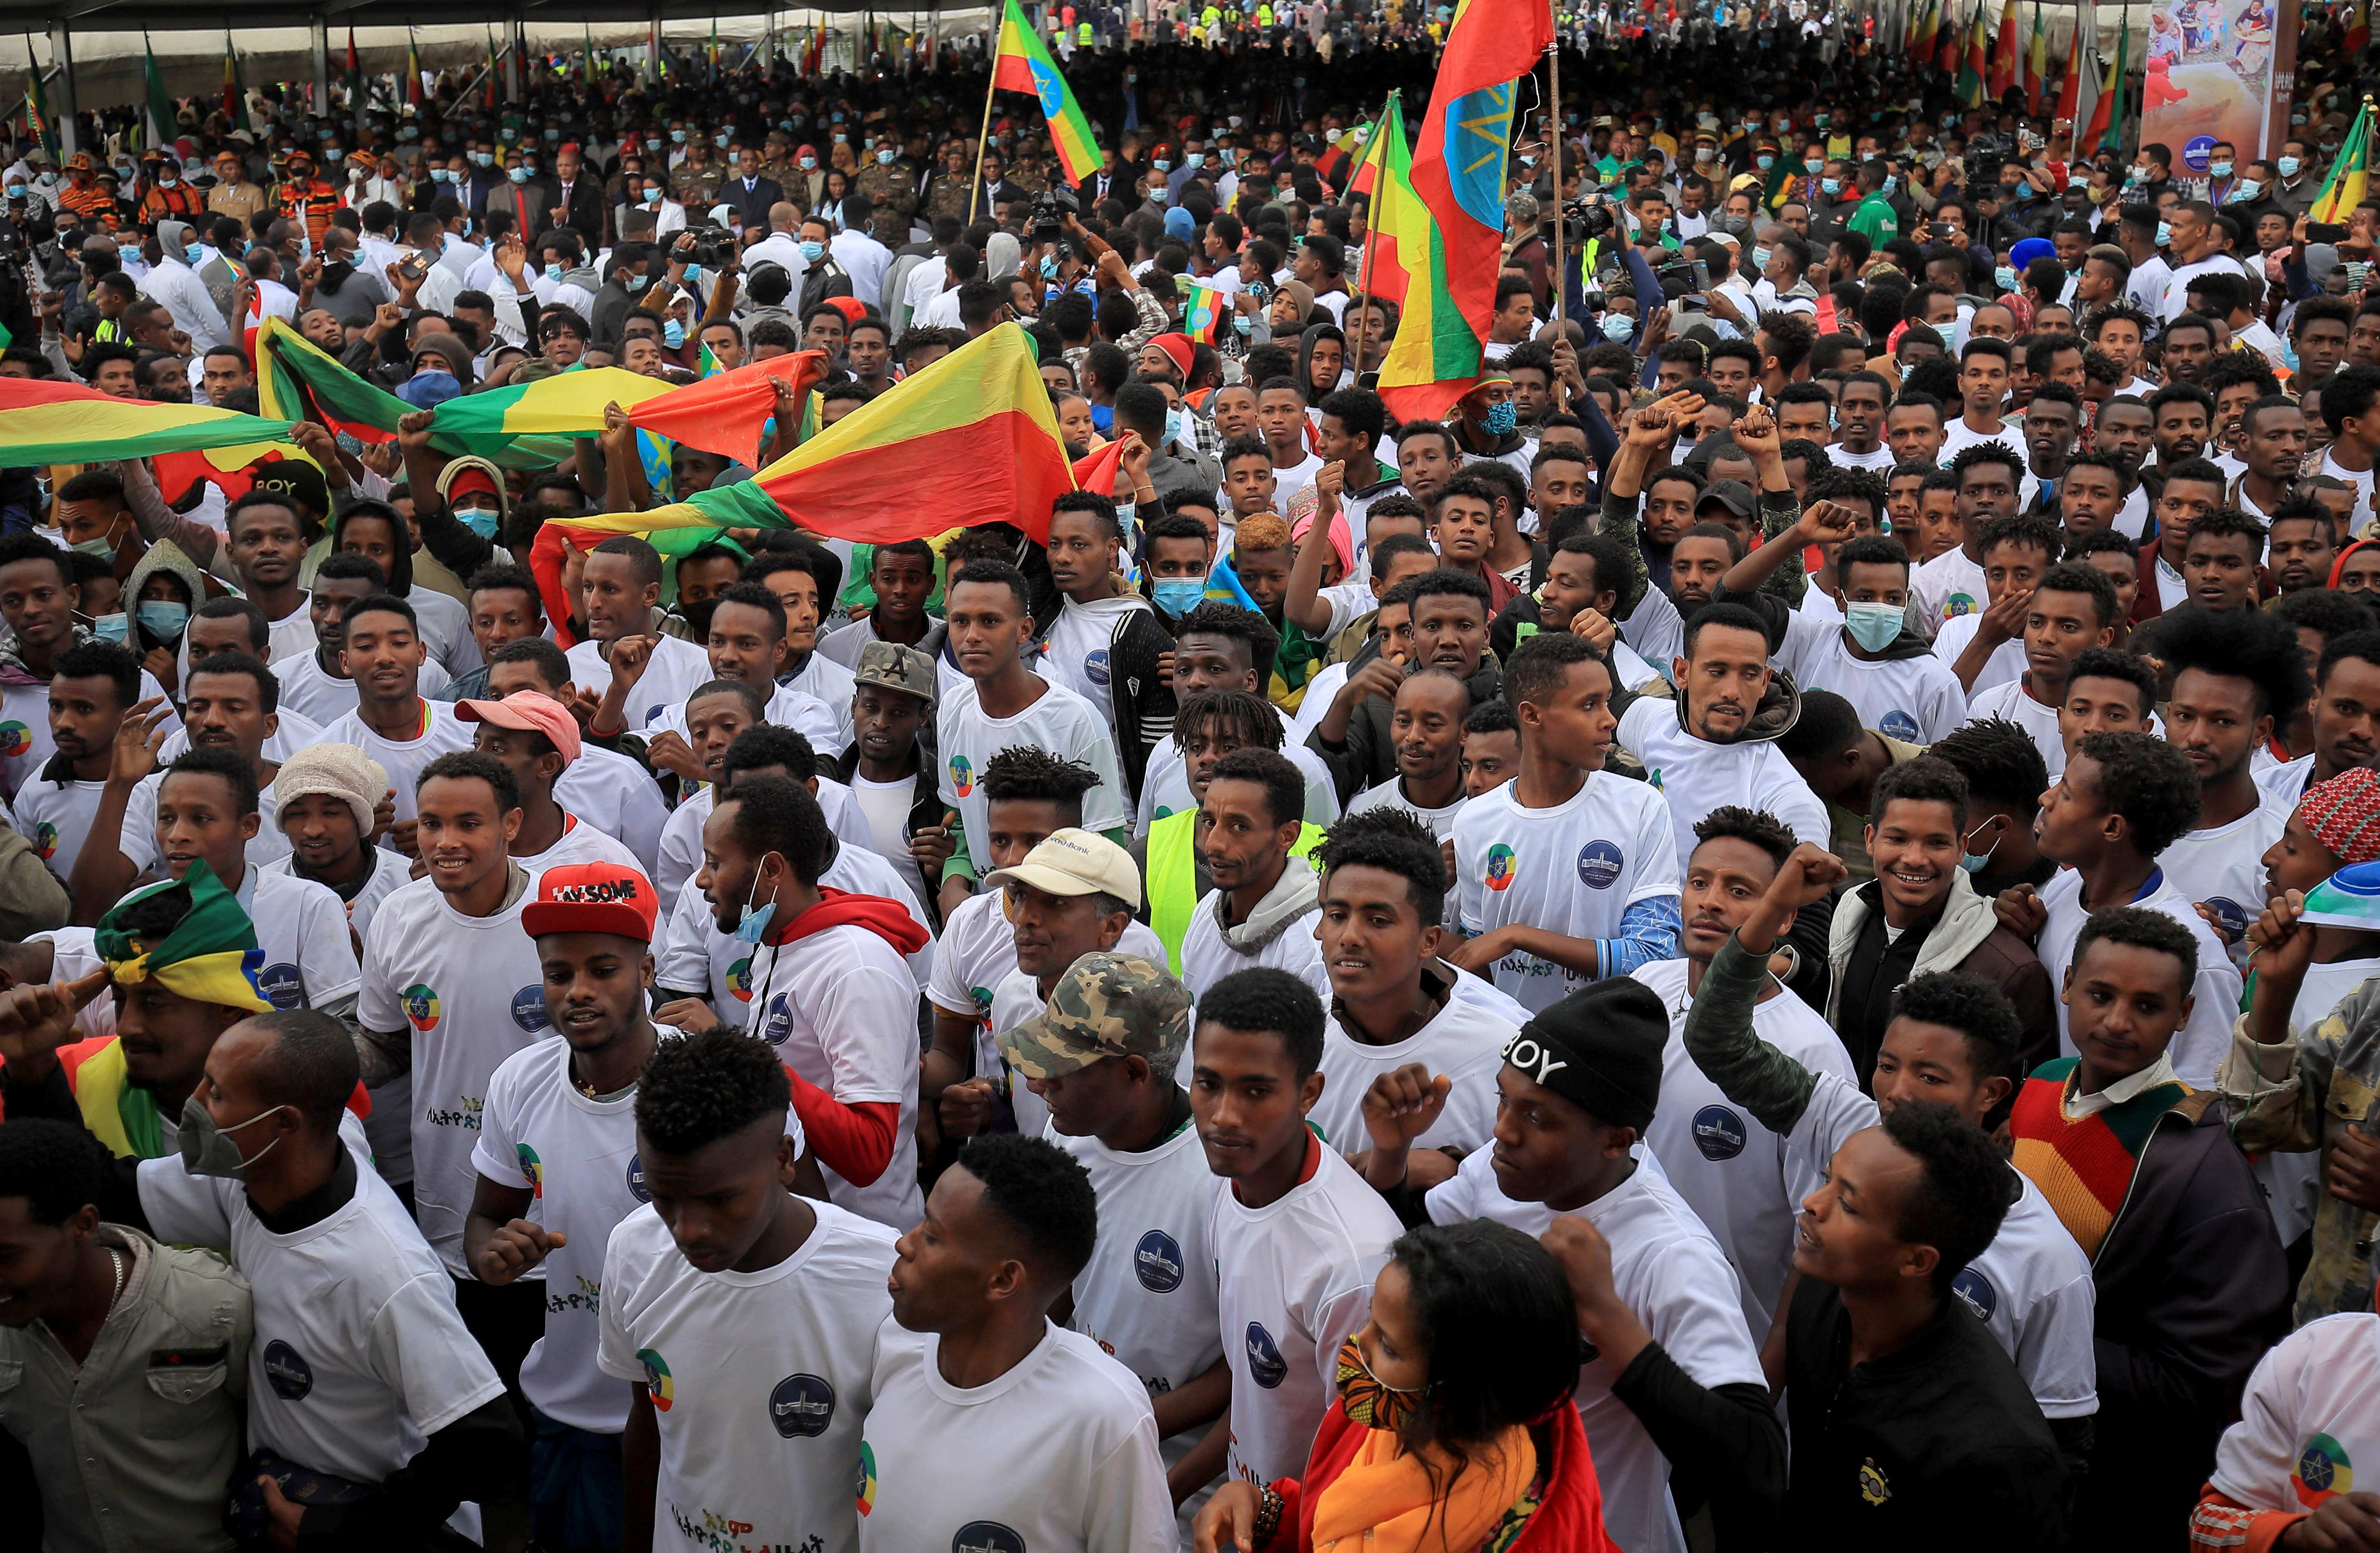 Recruits to join Ethiopia's Defense Force gather during the farewell ceremony at the Meskel Square in Addis Ababa, Ethiopia July 27, 2021. REUTERS/Tiksa Negeri